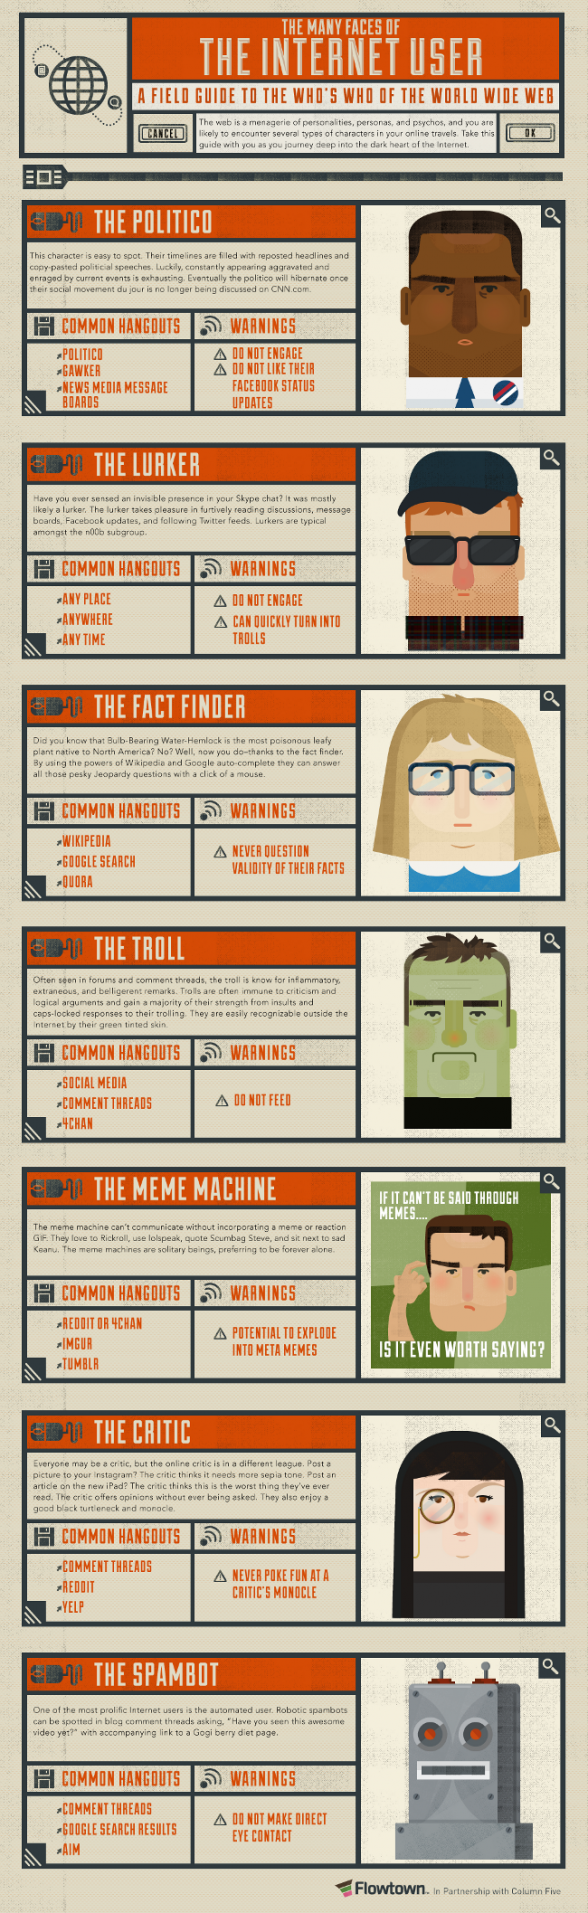 Flowtown-Faces-of-the-Internet1.png